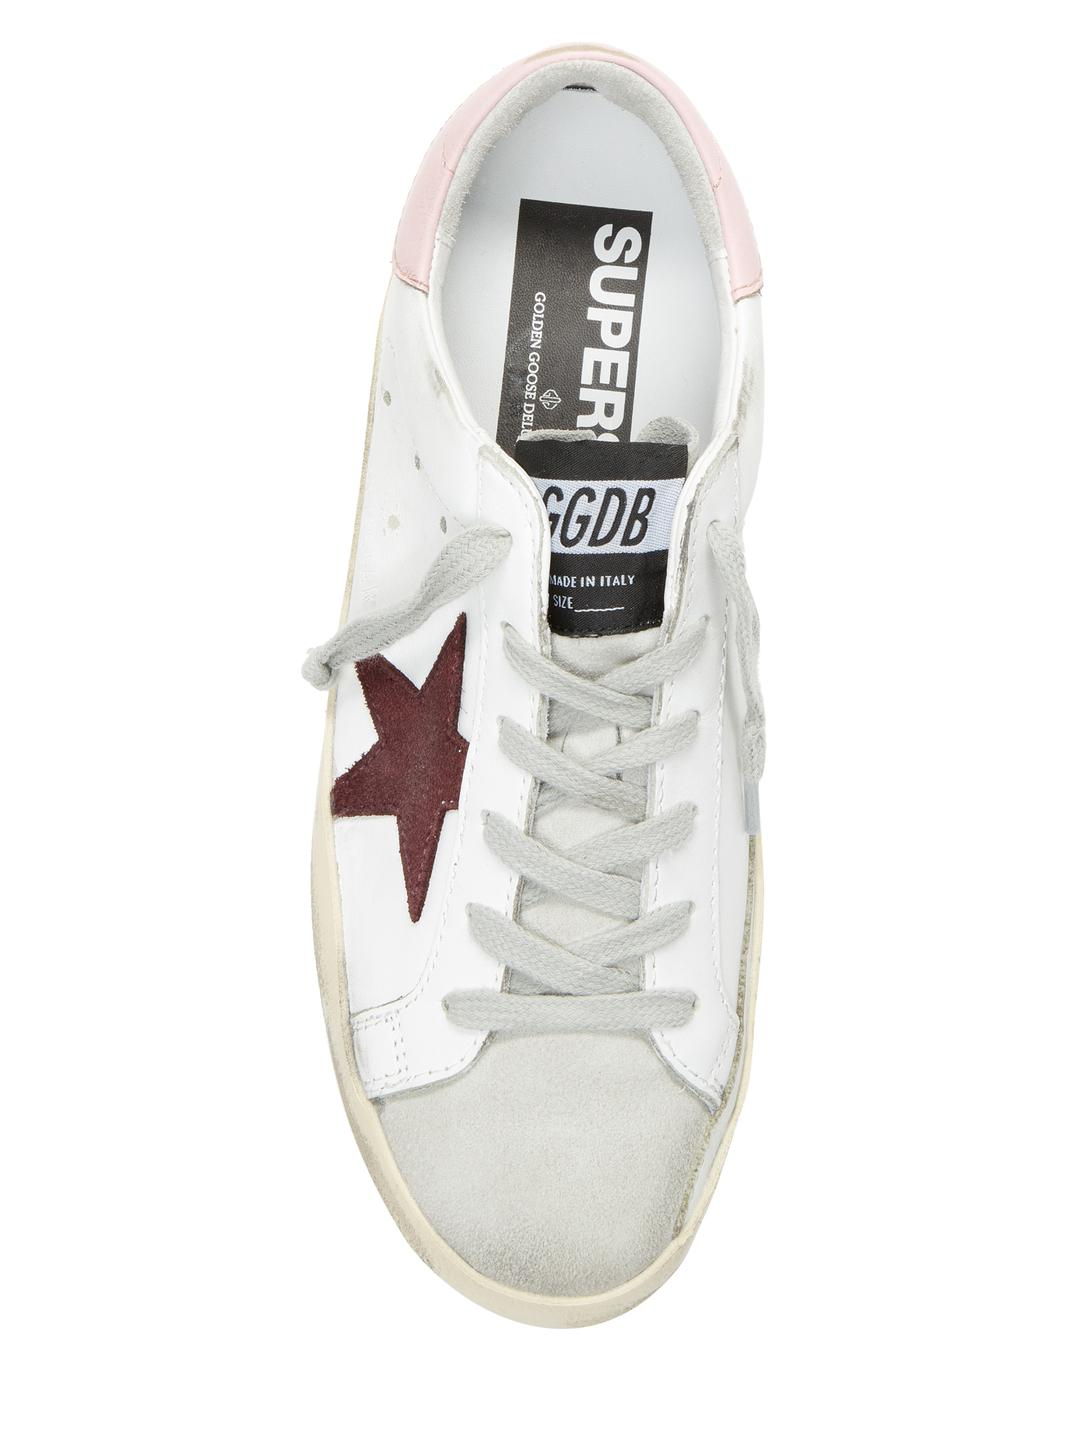 Golden Goose Deluxe Brand Leather Star Patch Sneakers in White